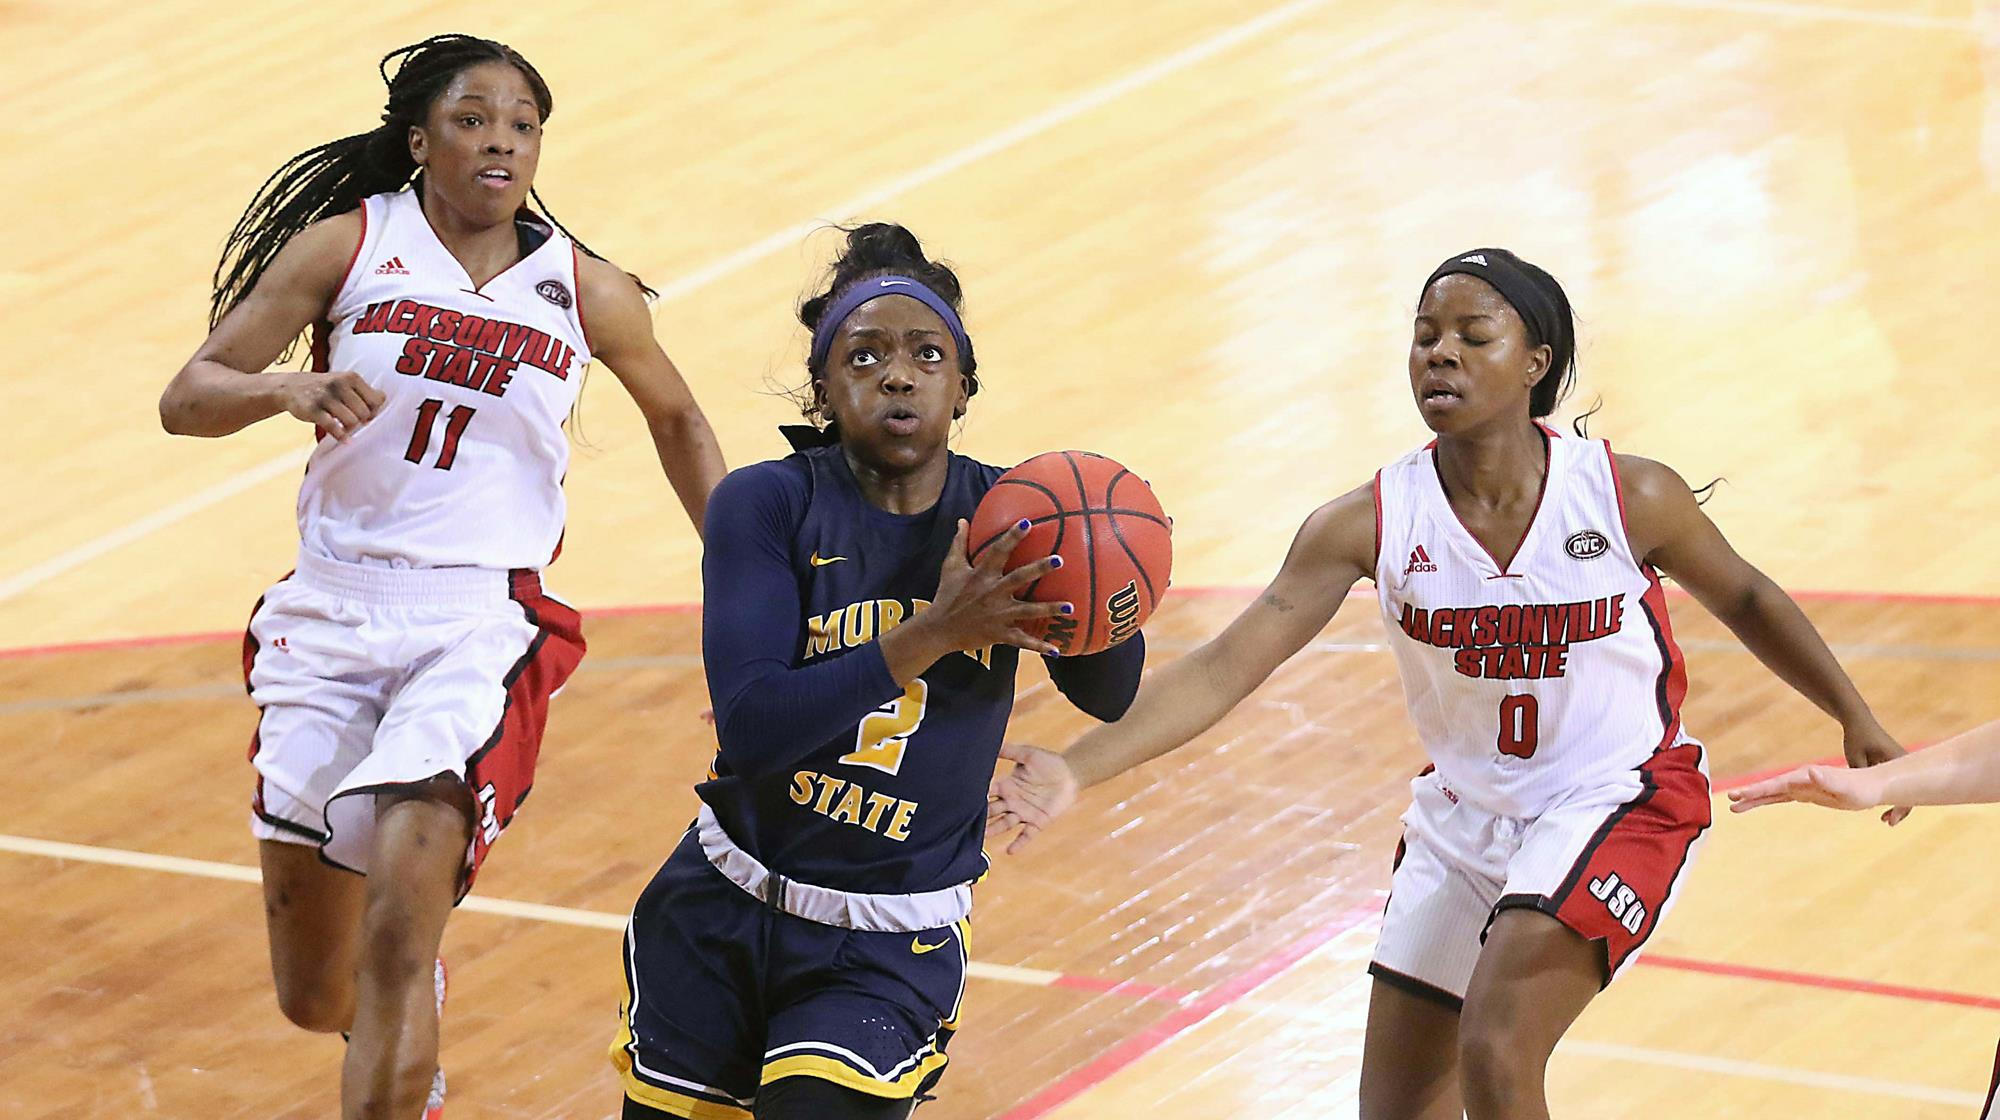 Murray State's James receives OVC honors